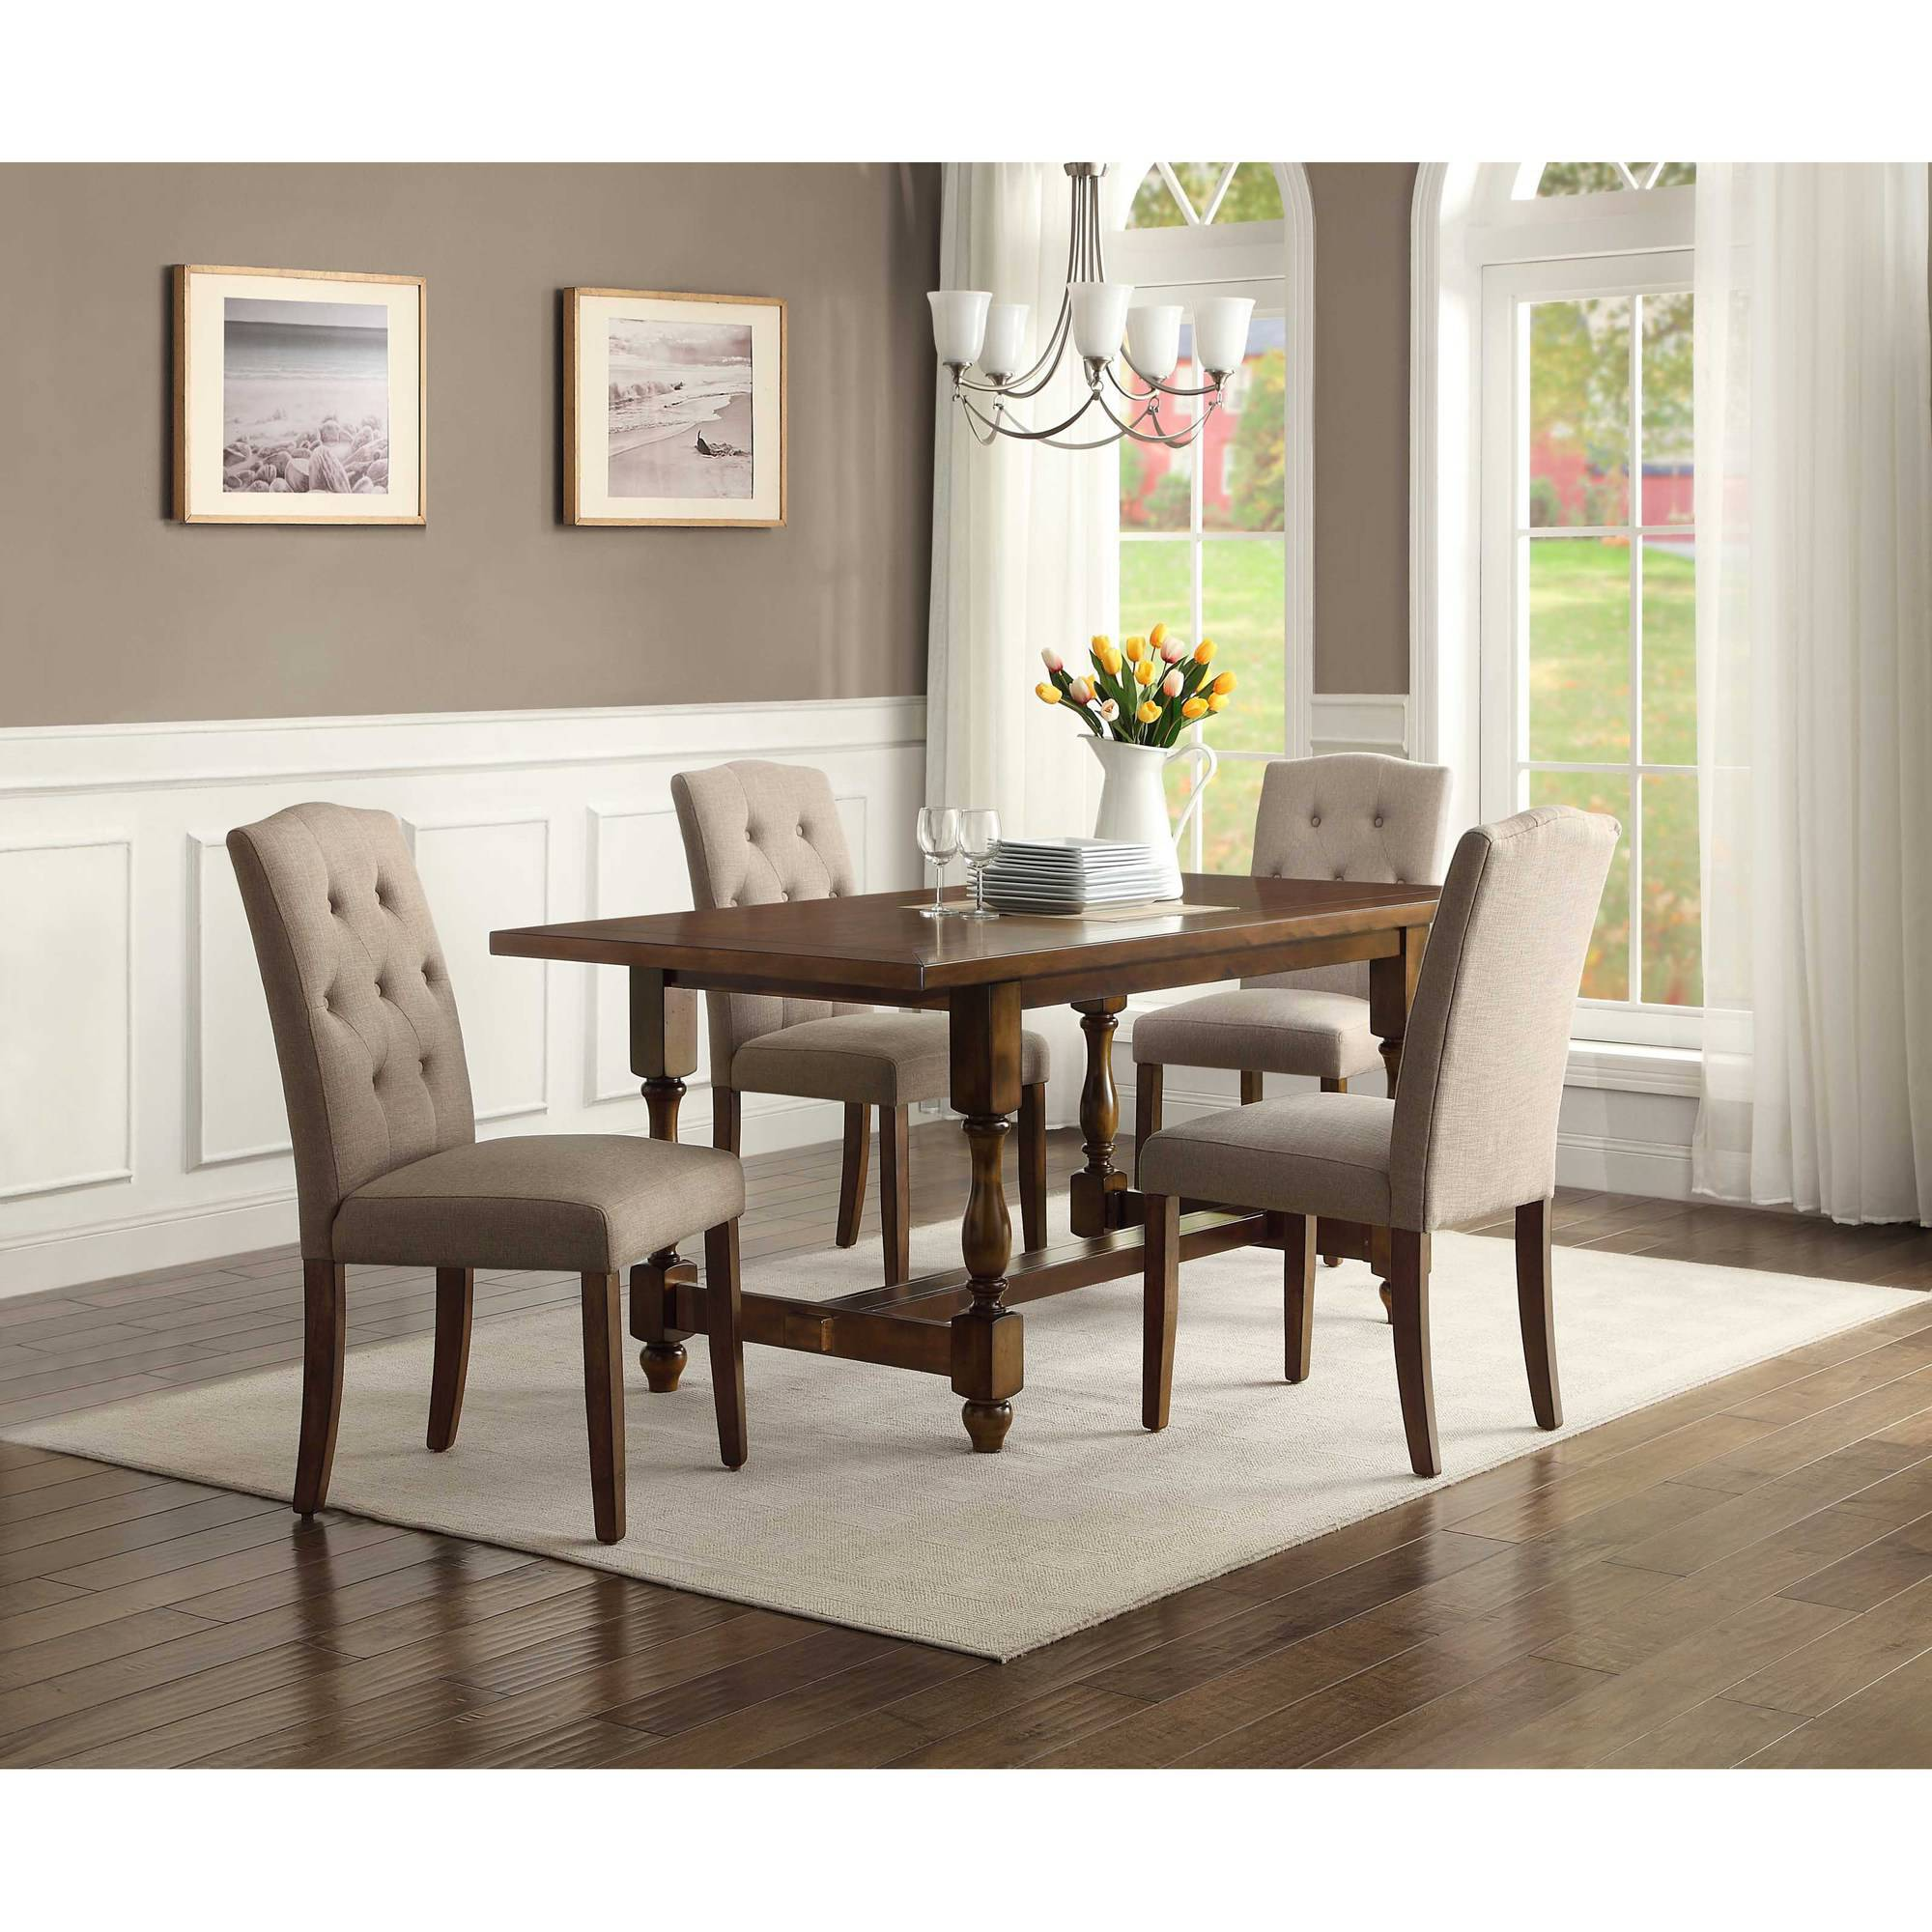 Charmant Better Homes And Gardens Providence 5 Piece Dining Set, Brown   Walmart.com